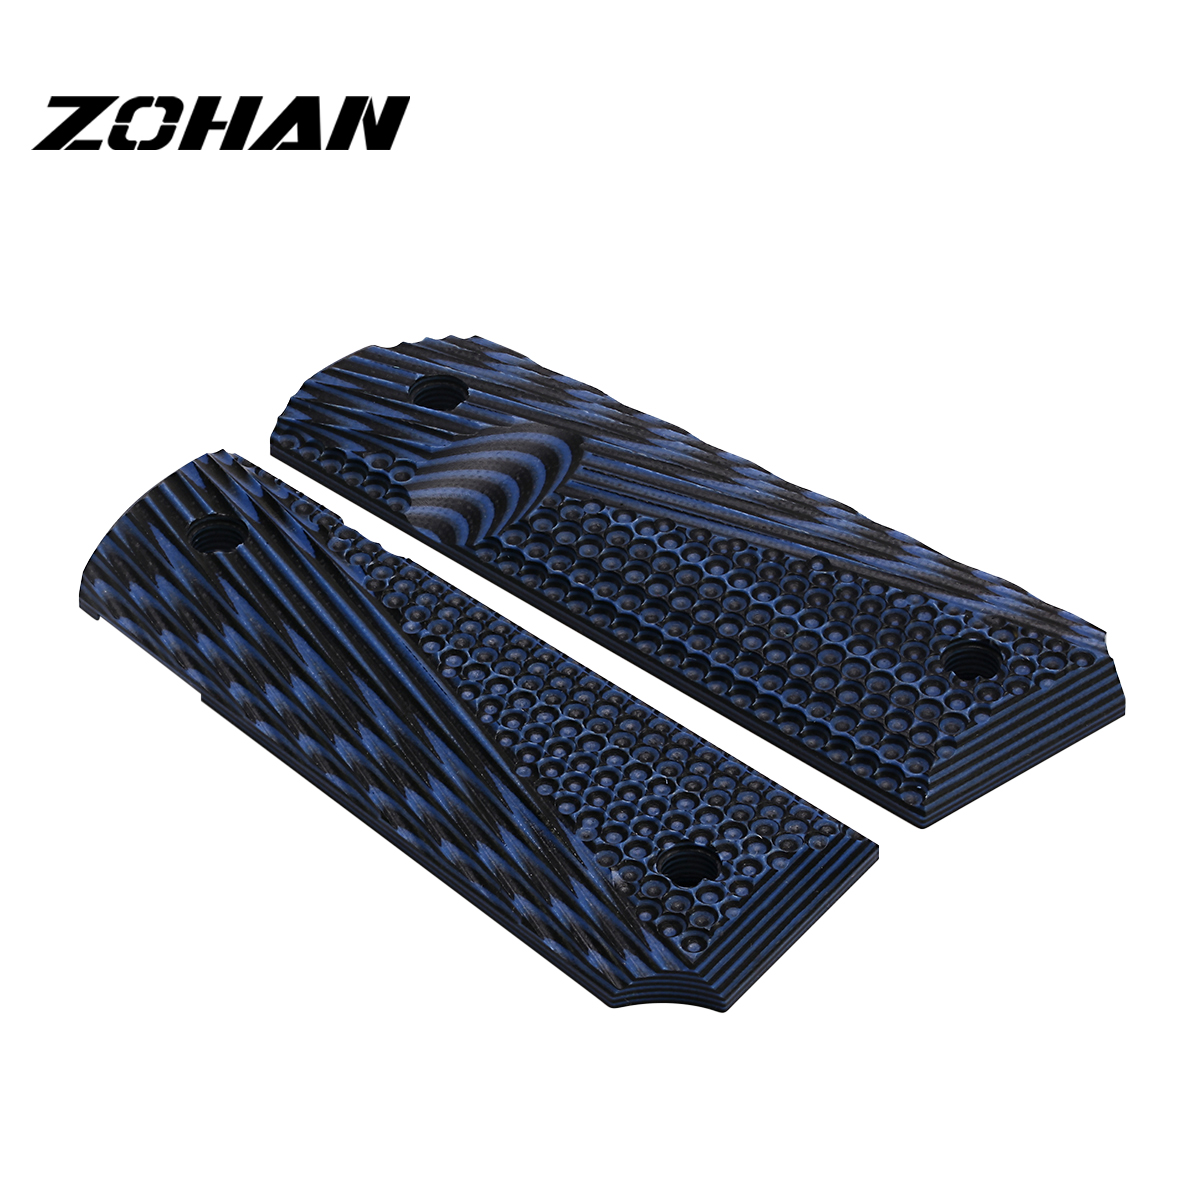 ZOHAN 2Pcs Tactical 1911 G10 Pistol Grips Full Size Commander Ambi Safety Cut Screws Texture Hanggun Grips for Hunting Accessory